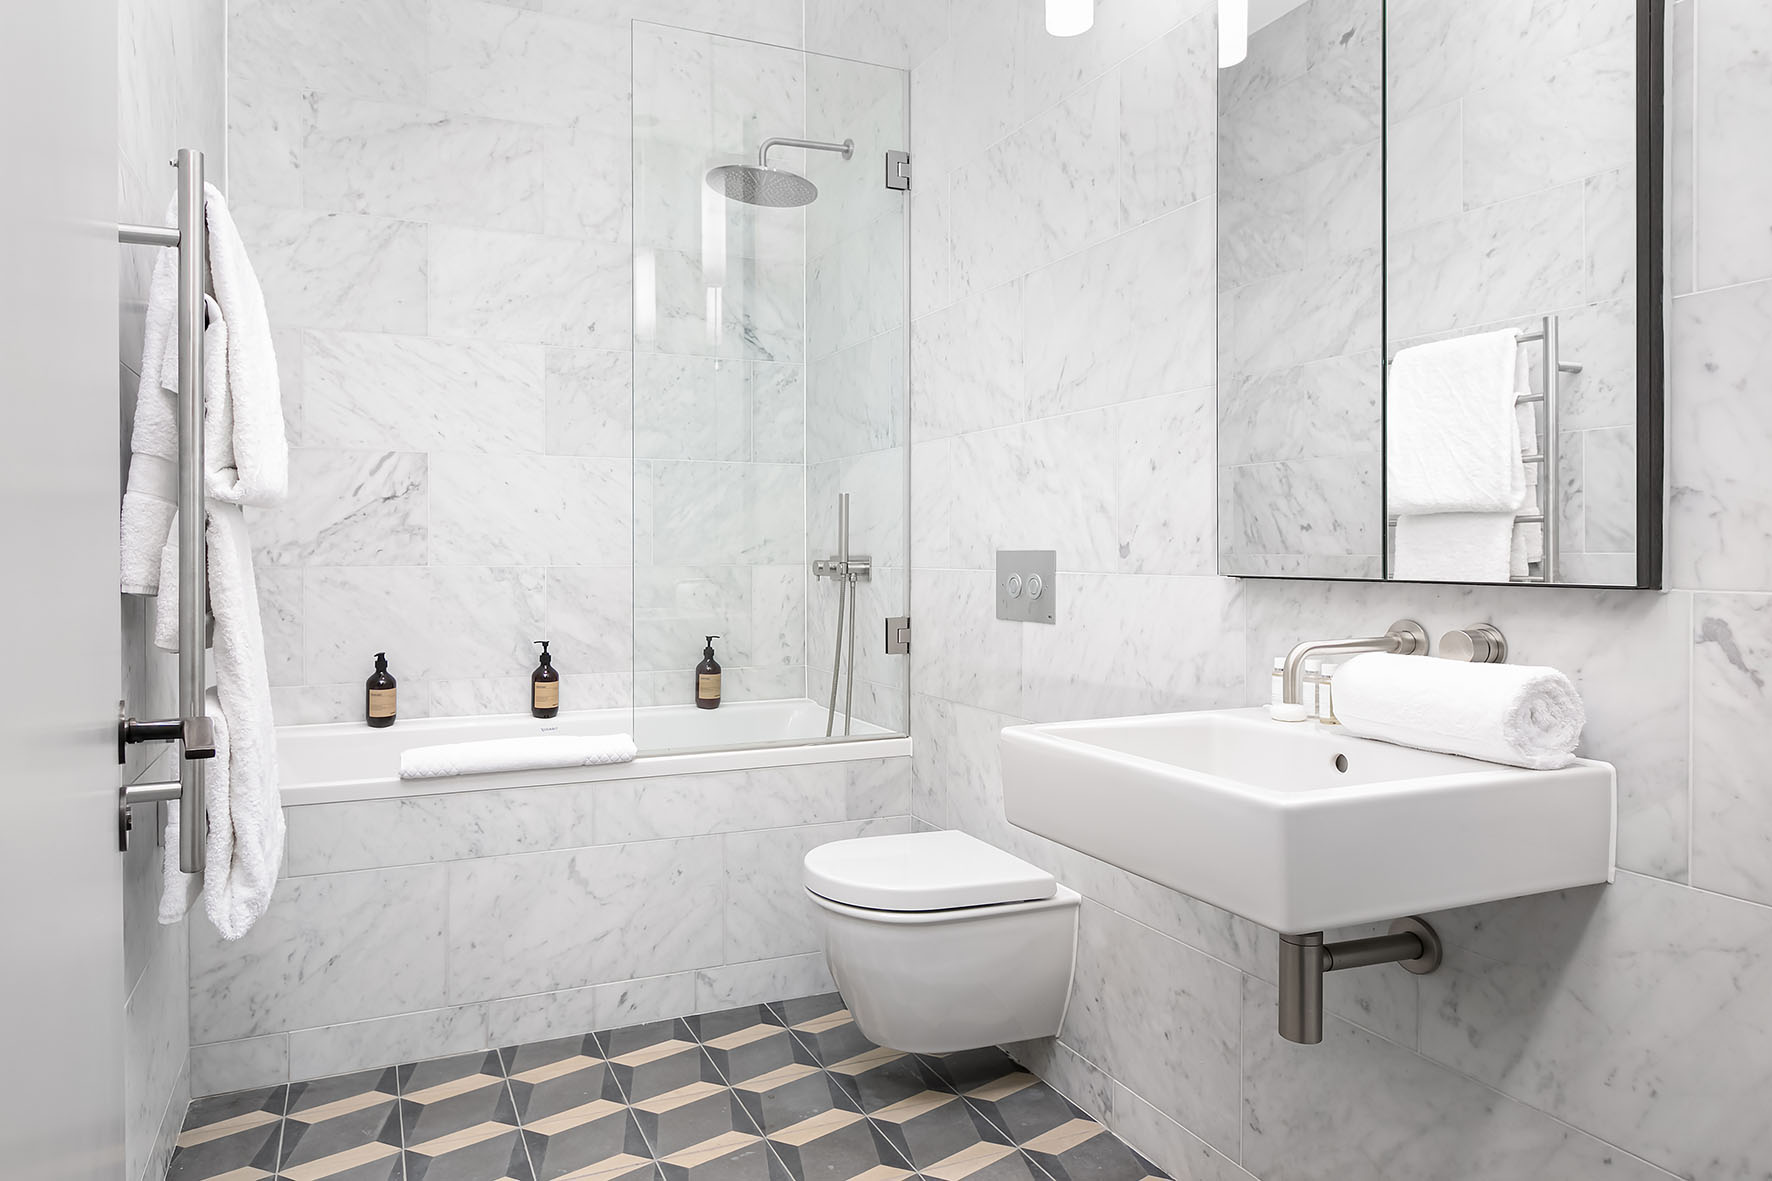 Lovelydays luxury service apartment rental - London - Soho - Berwick Street I - Lovelysuite - 3 bedrooms - 3 bathrooms - Beautiful bathtub - 5ff0abcdecdf - Lovelydays